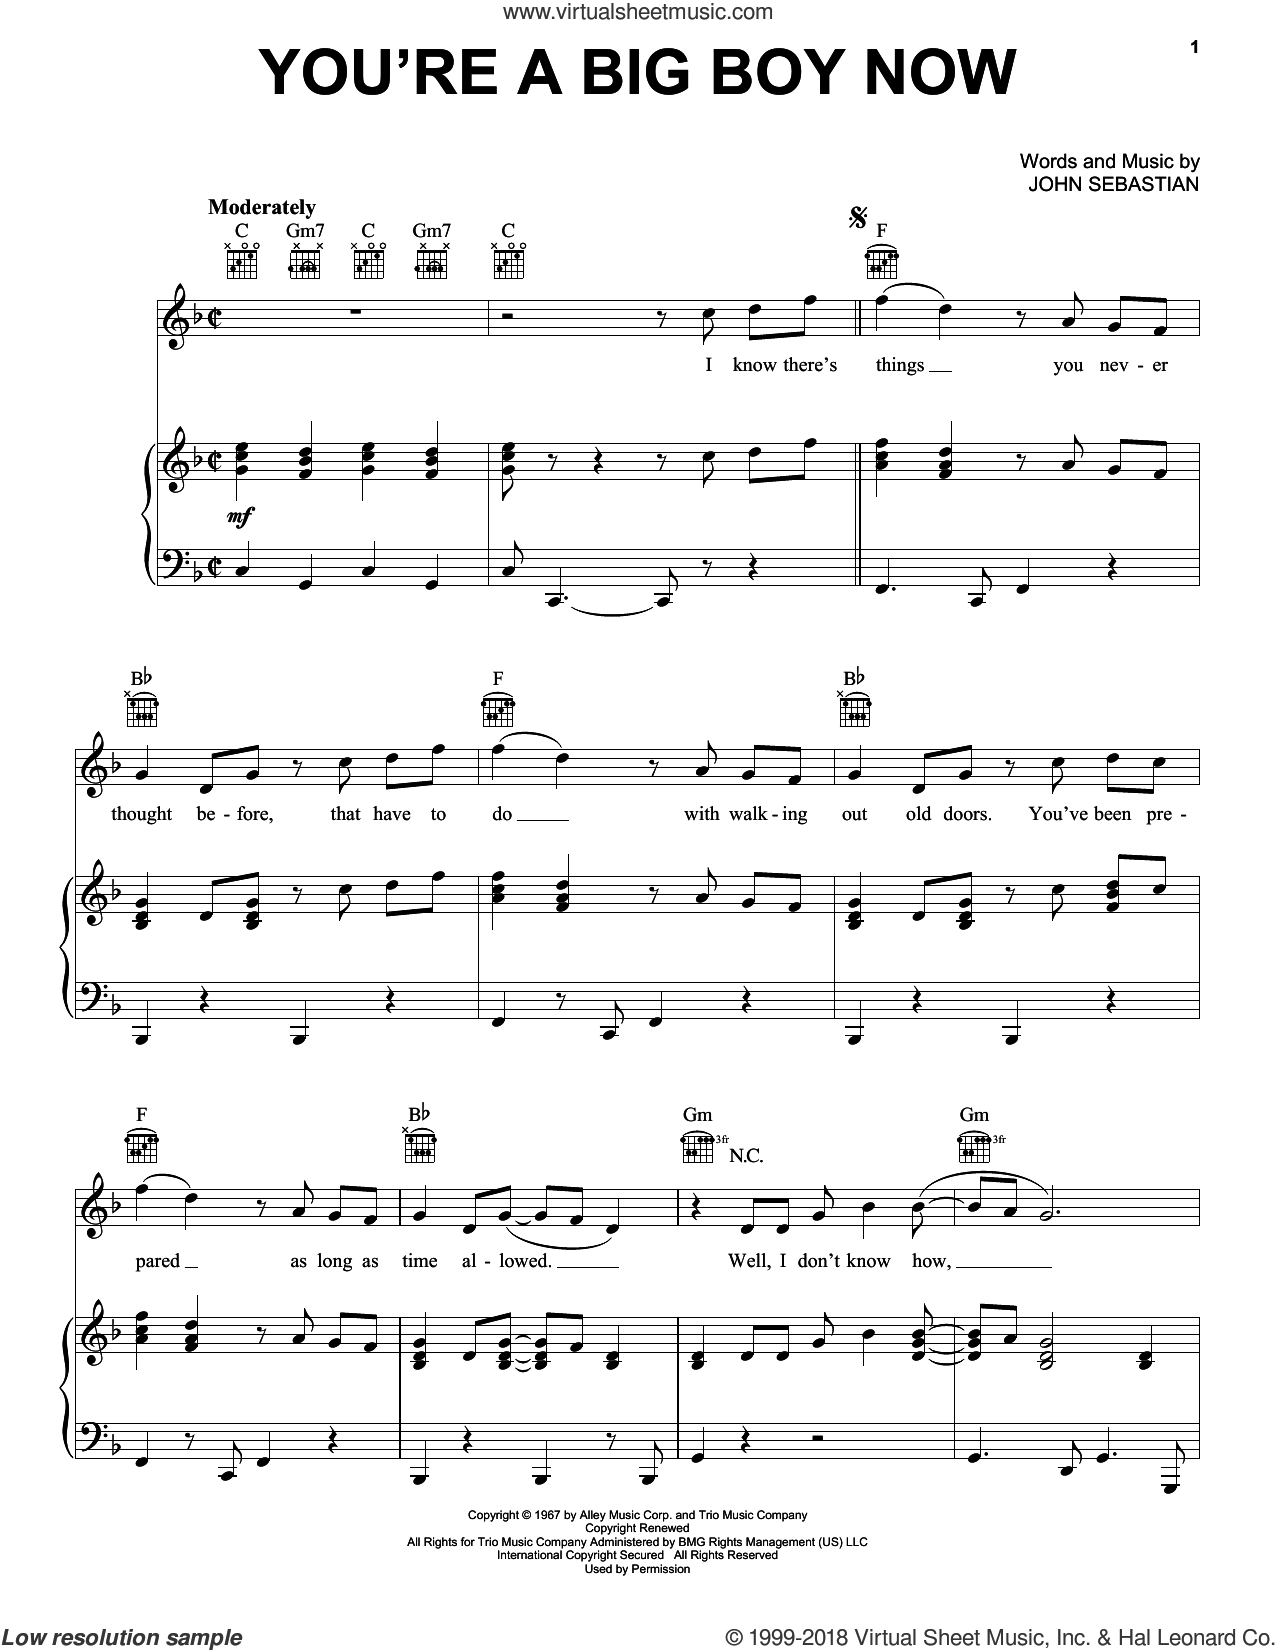 You're A Big Boy Now sheet music for voice, piano or guitar by Lovin' Spoonful and John Sebastian, intermediate skill level